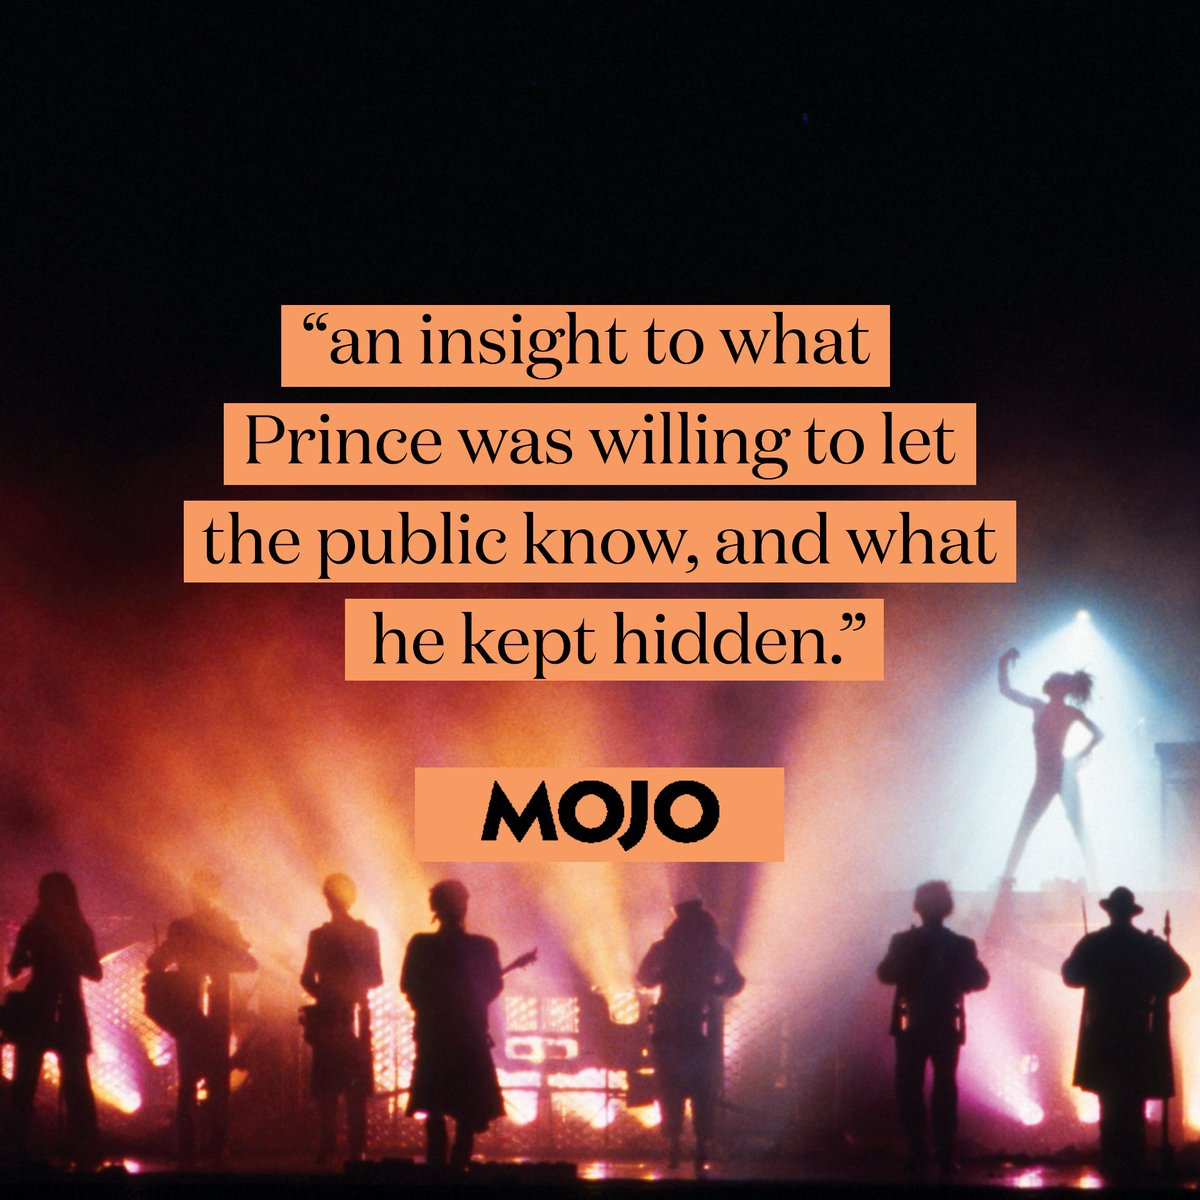 """Speaking to MOJO about the 94-track #PrinceSOTT Super Deluxe Edition, engineer Susan Rogers said the collection is """"an insight to what Prince was willing to let the public know, and what he kept hidden."""""""